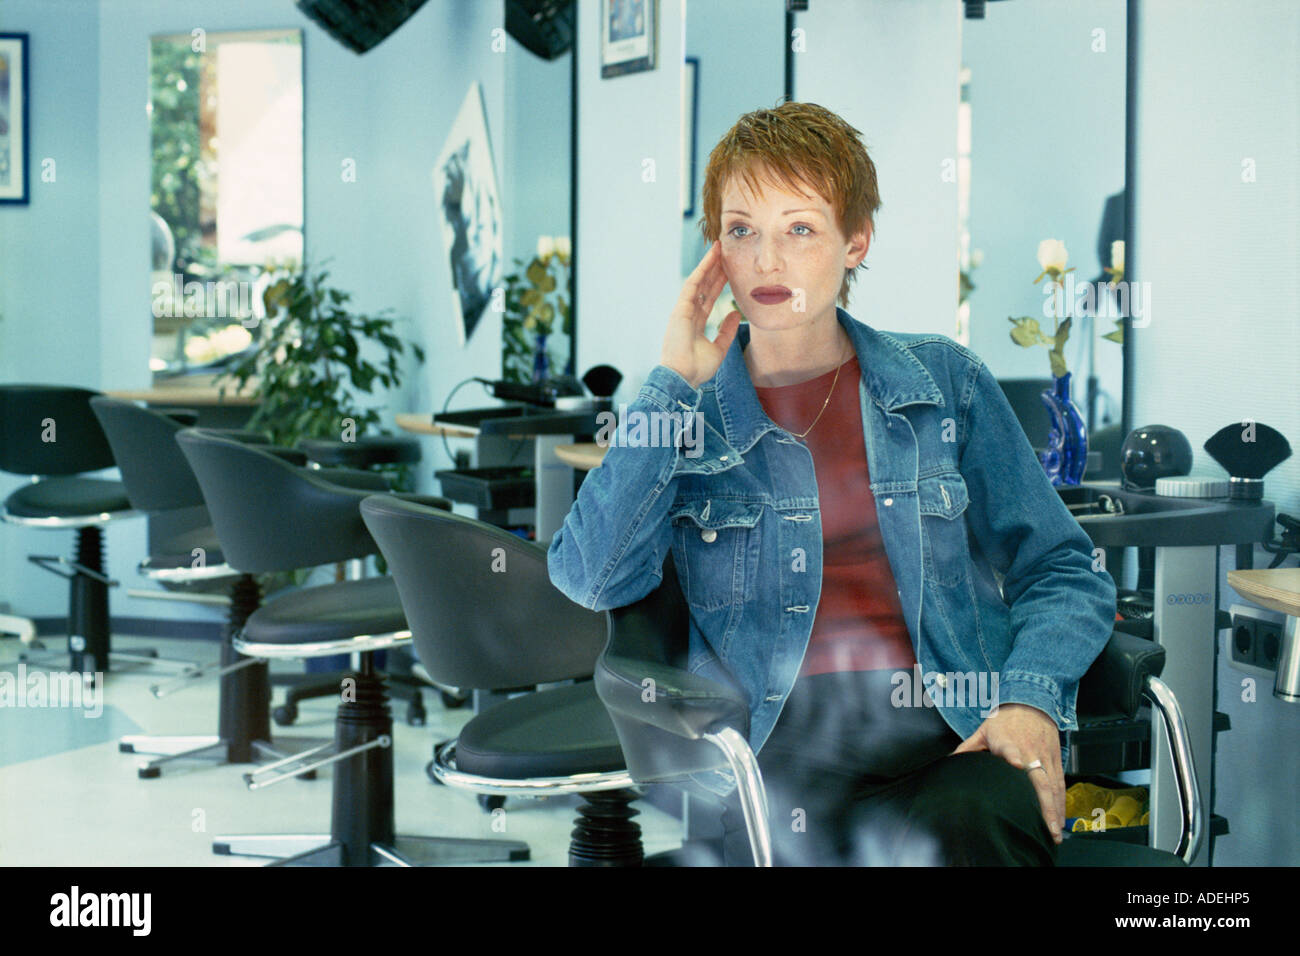 Woman sitting in hair salon. - Stock Image